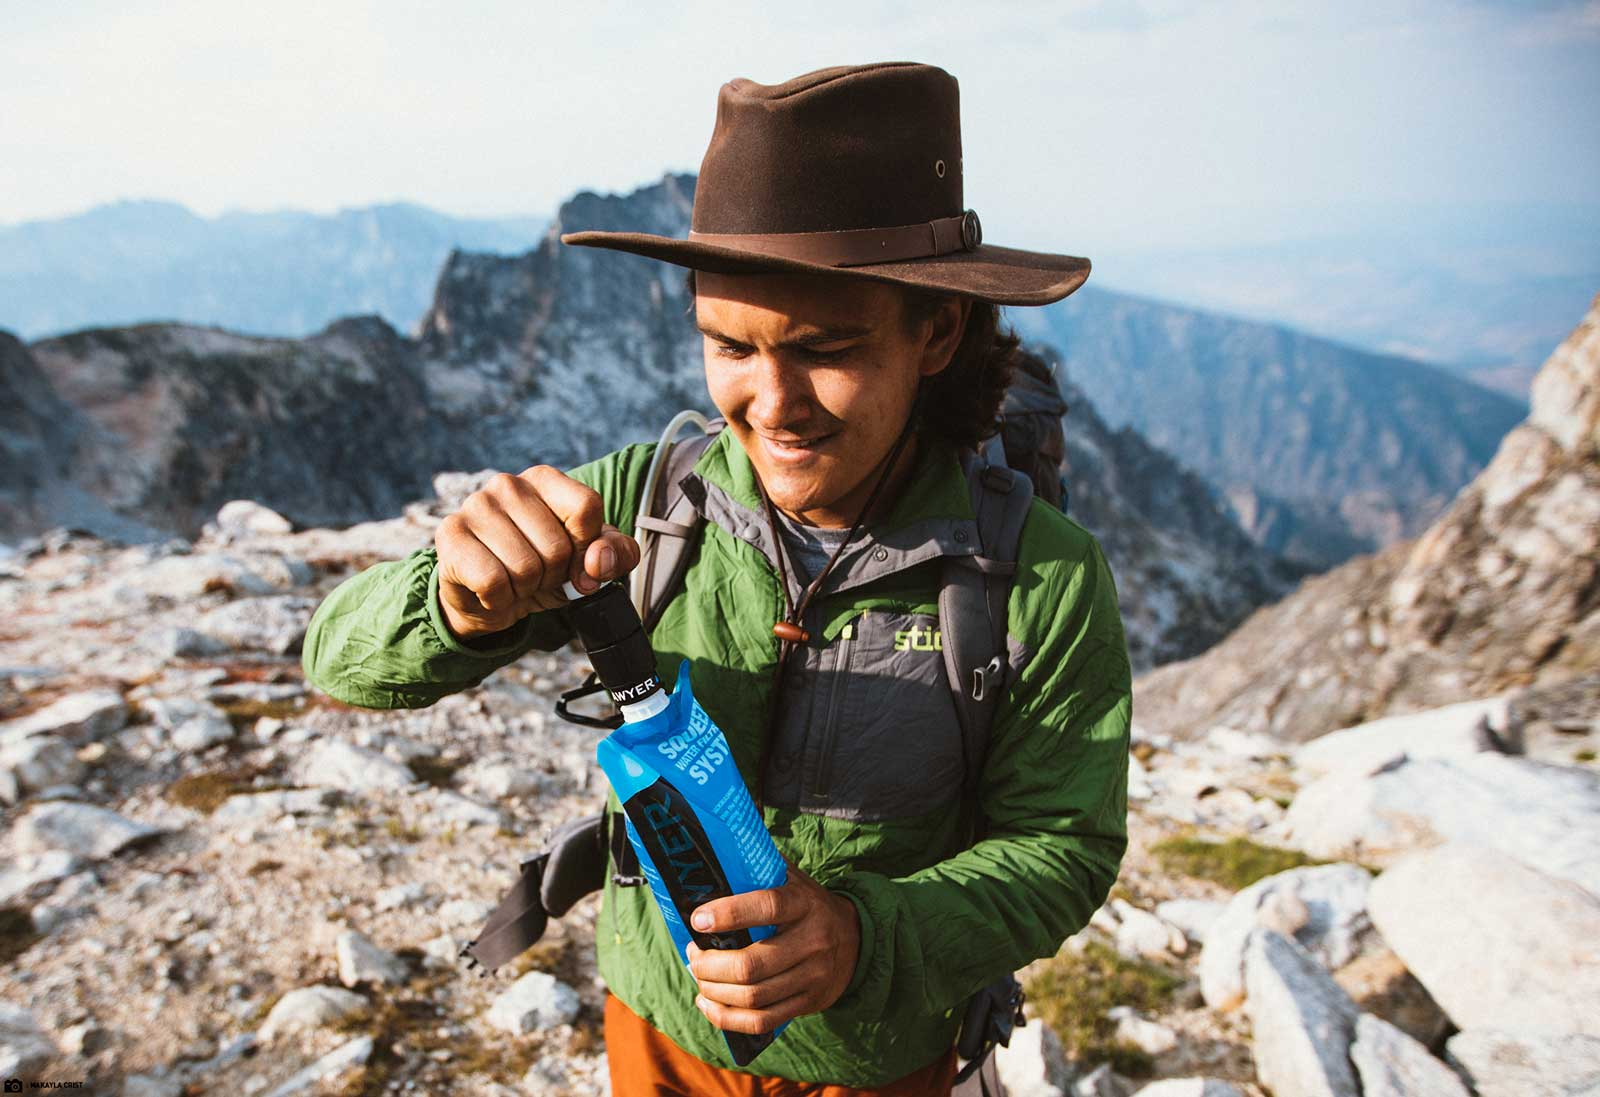 A Gentleman Prepares to Drink Water from his Sawyer Micro Squeeze Water Filter on top of a Mountain